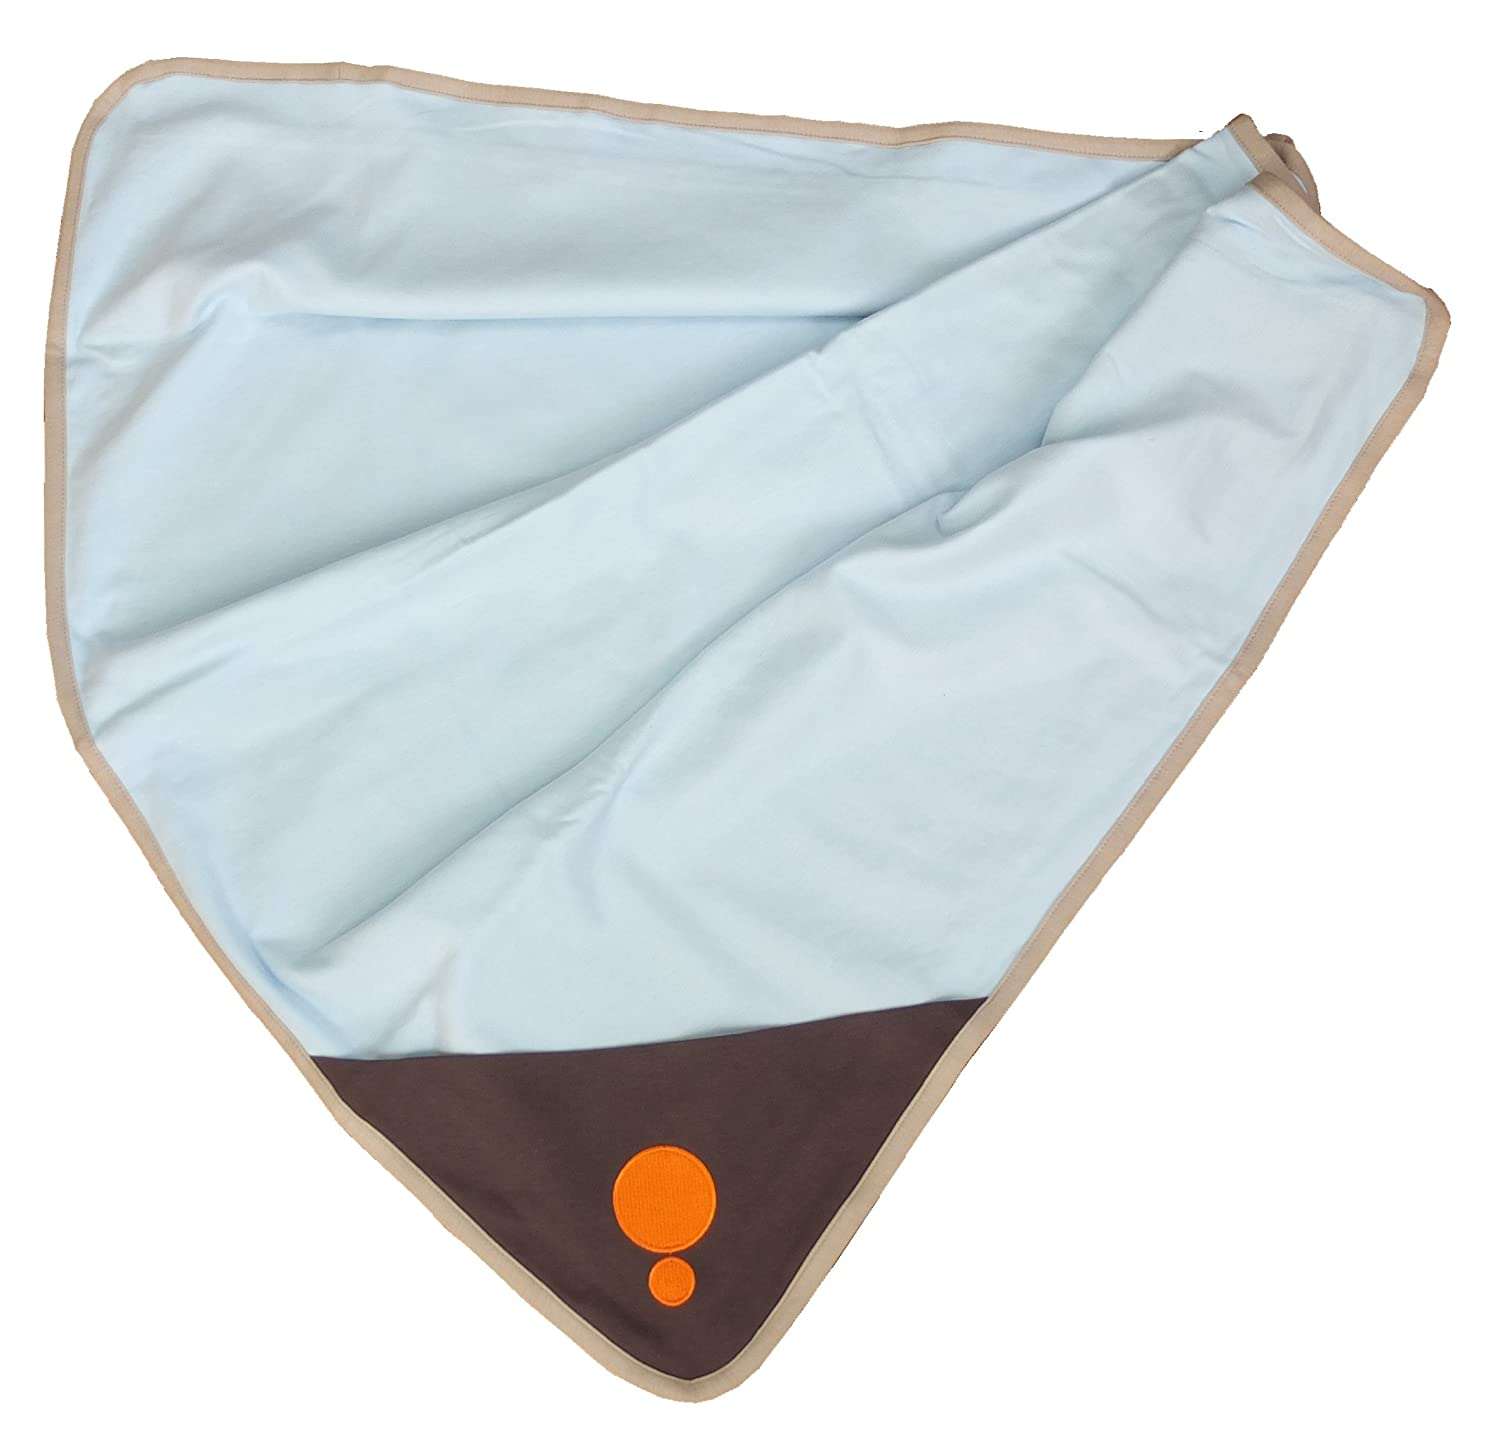 Belly Armor Maternity Belly Blanket Chic Light Blue Cosmo – Protective Cotton Blanket Effective at Shielding Everyday Wireless Radiation RadiaShield Technologies BBC.C.04.10.00001